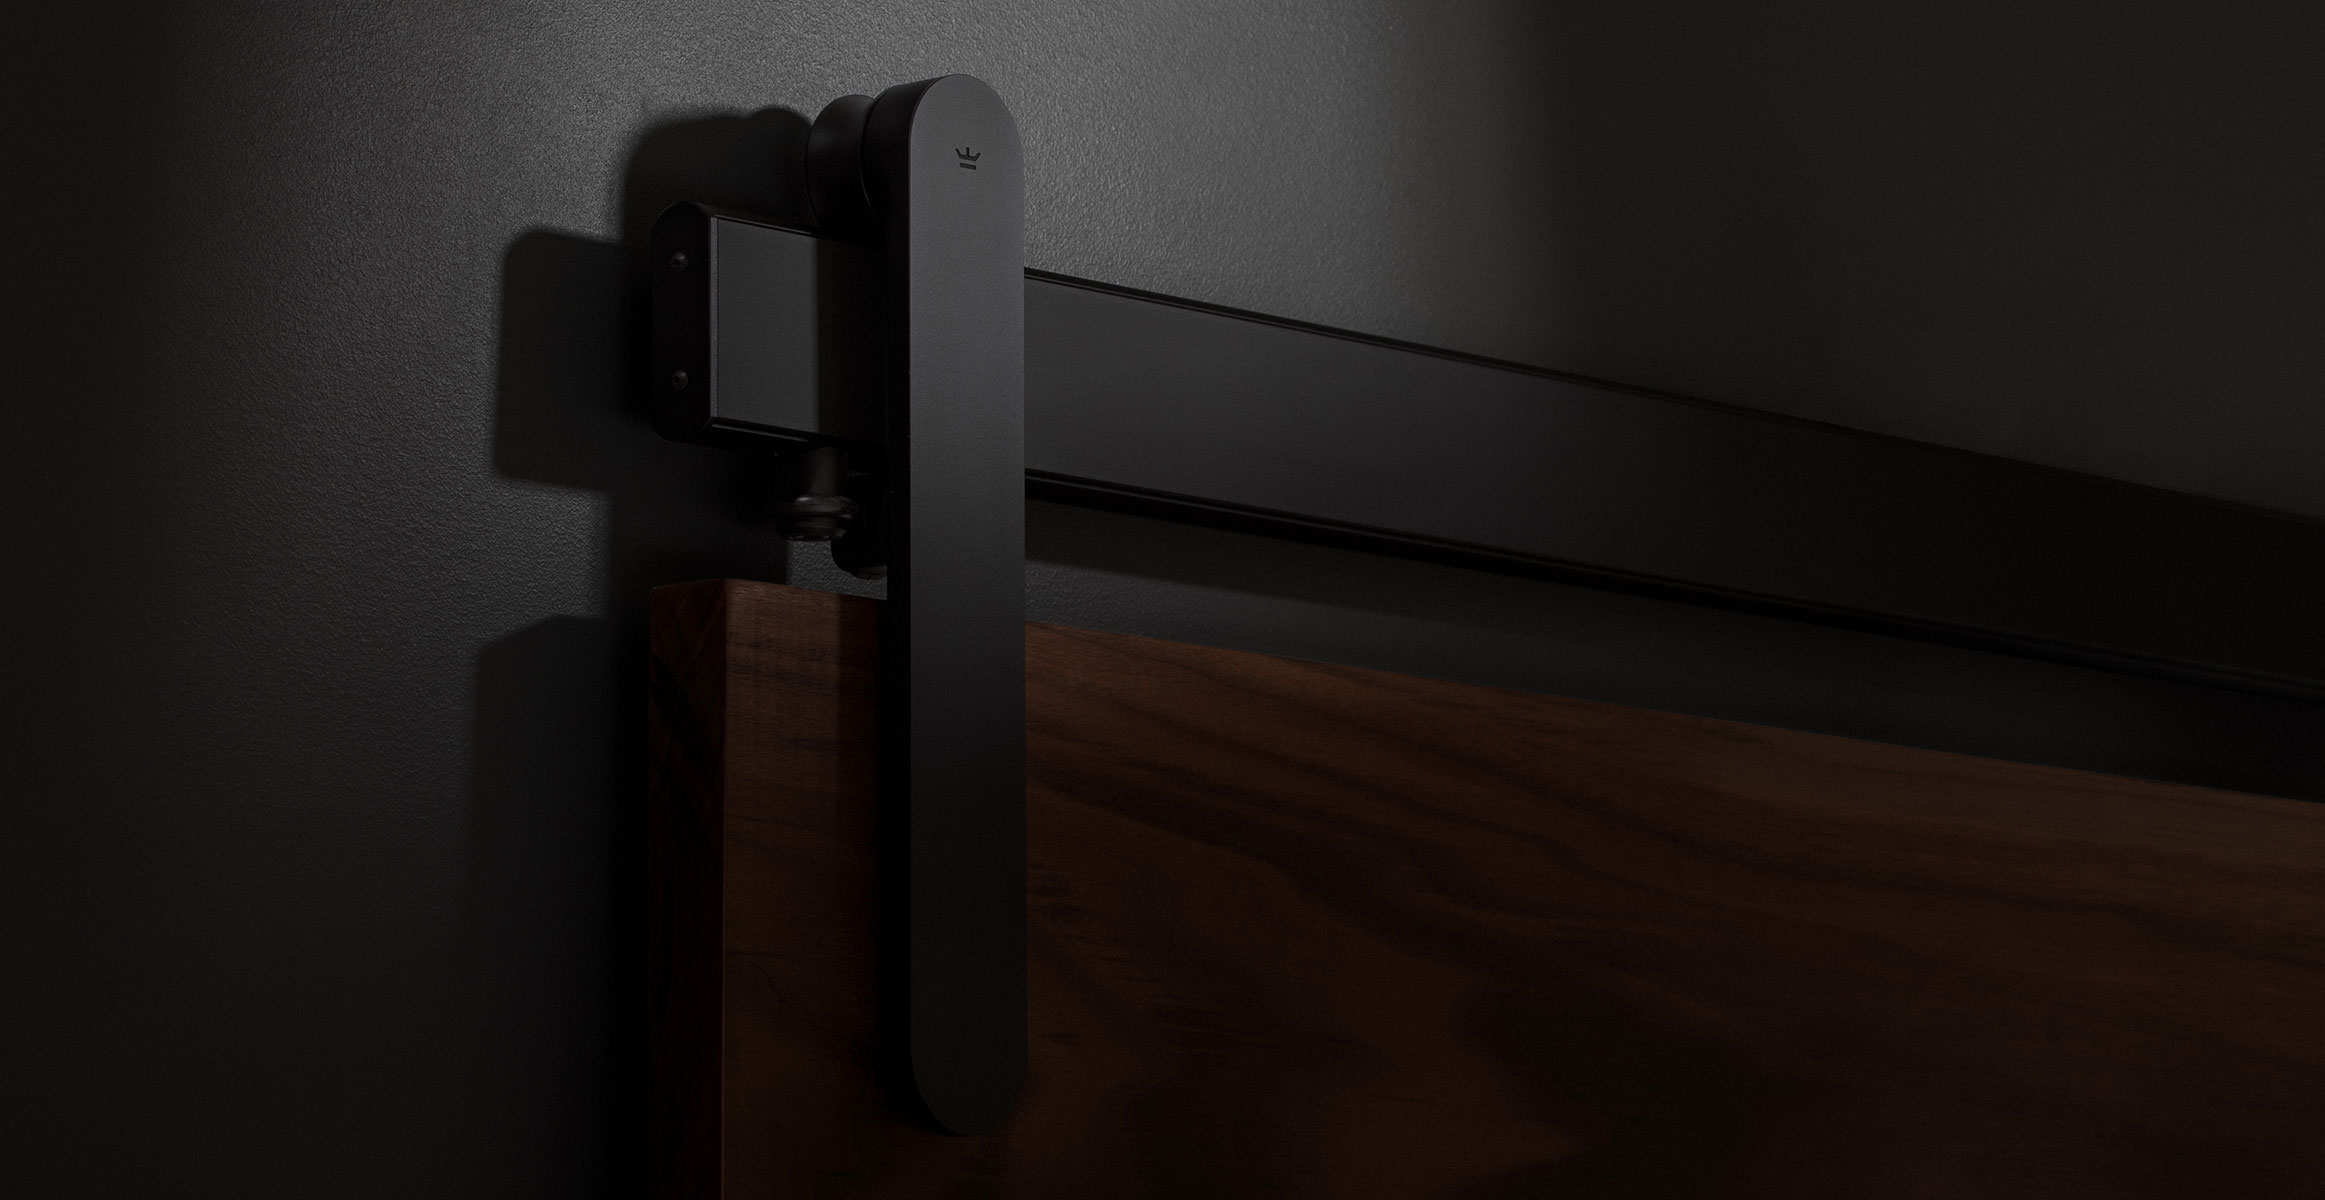 Loki sliding door hardware in Black Satin finish installed on dark walnut door panel